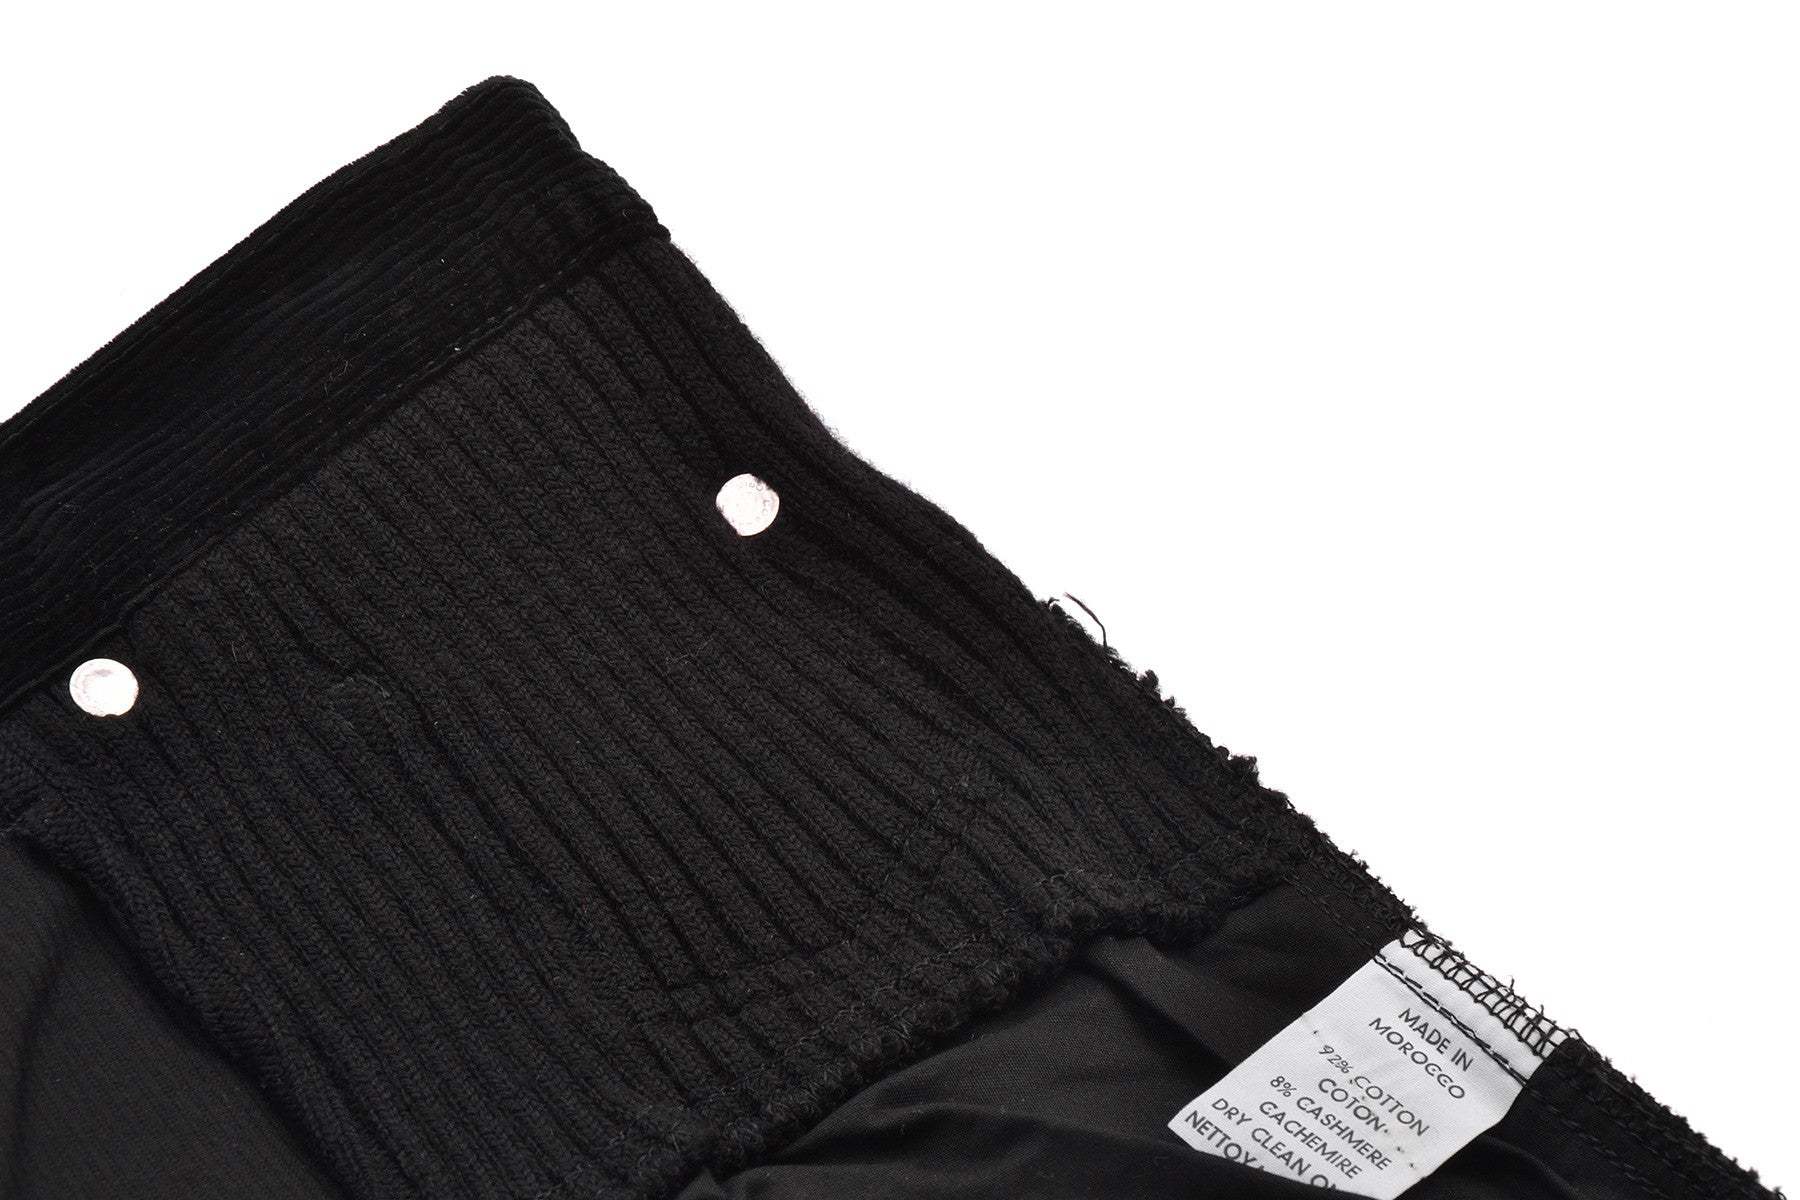 2007 A/W CORDUROY PANTS WITH CASHMERE KNIT INSERTS